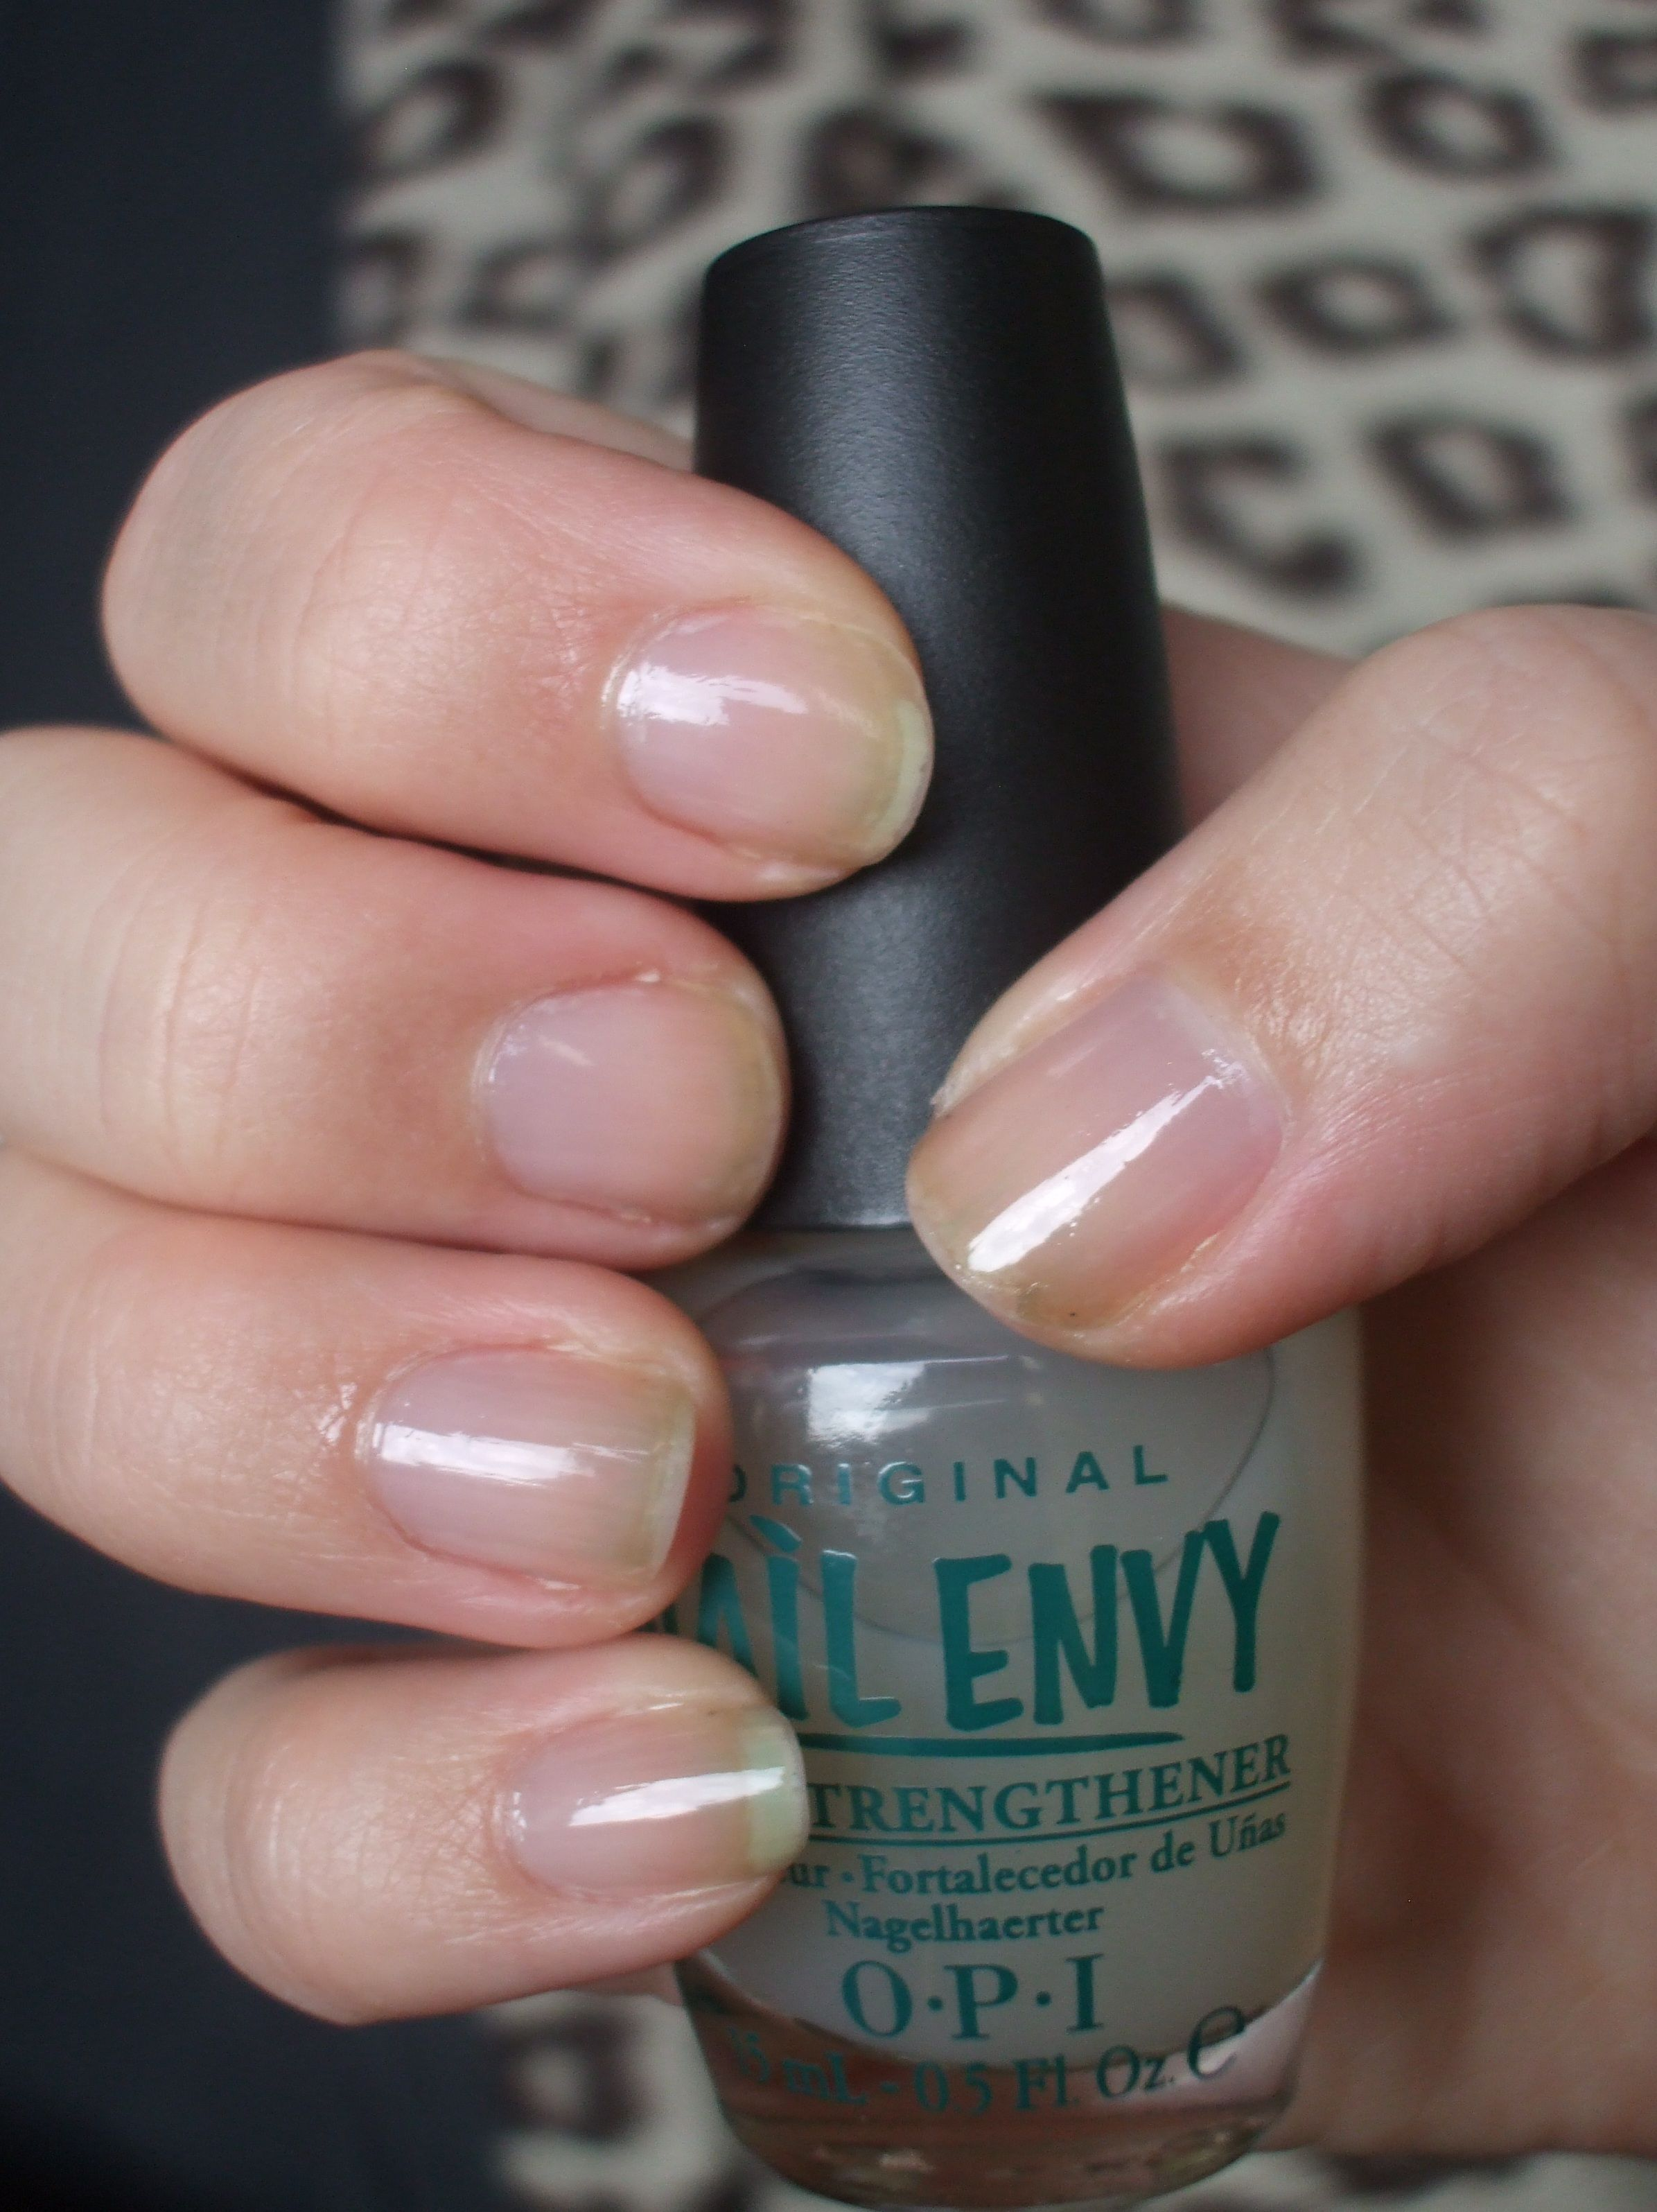 OPI Original Nail Envy Strengthener | Nail Strengtheners | Pinterest ...